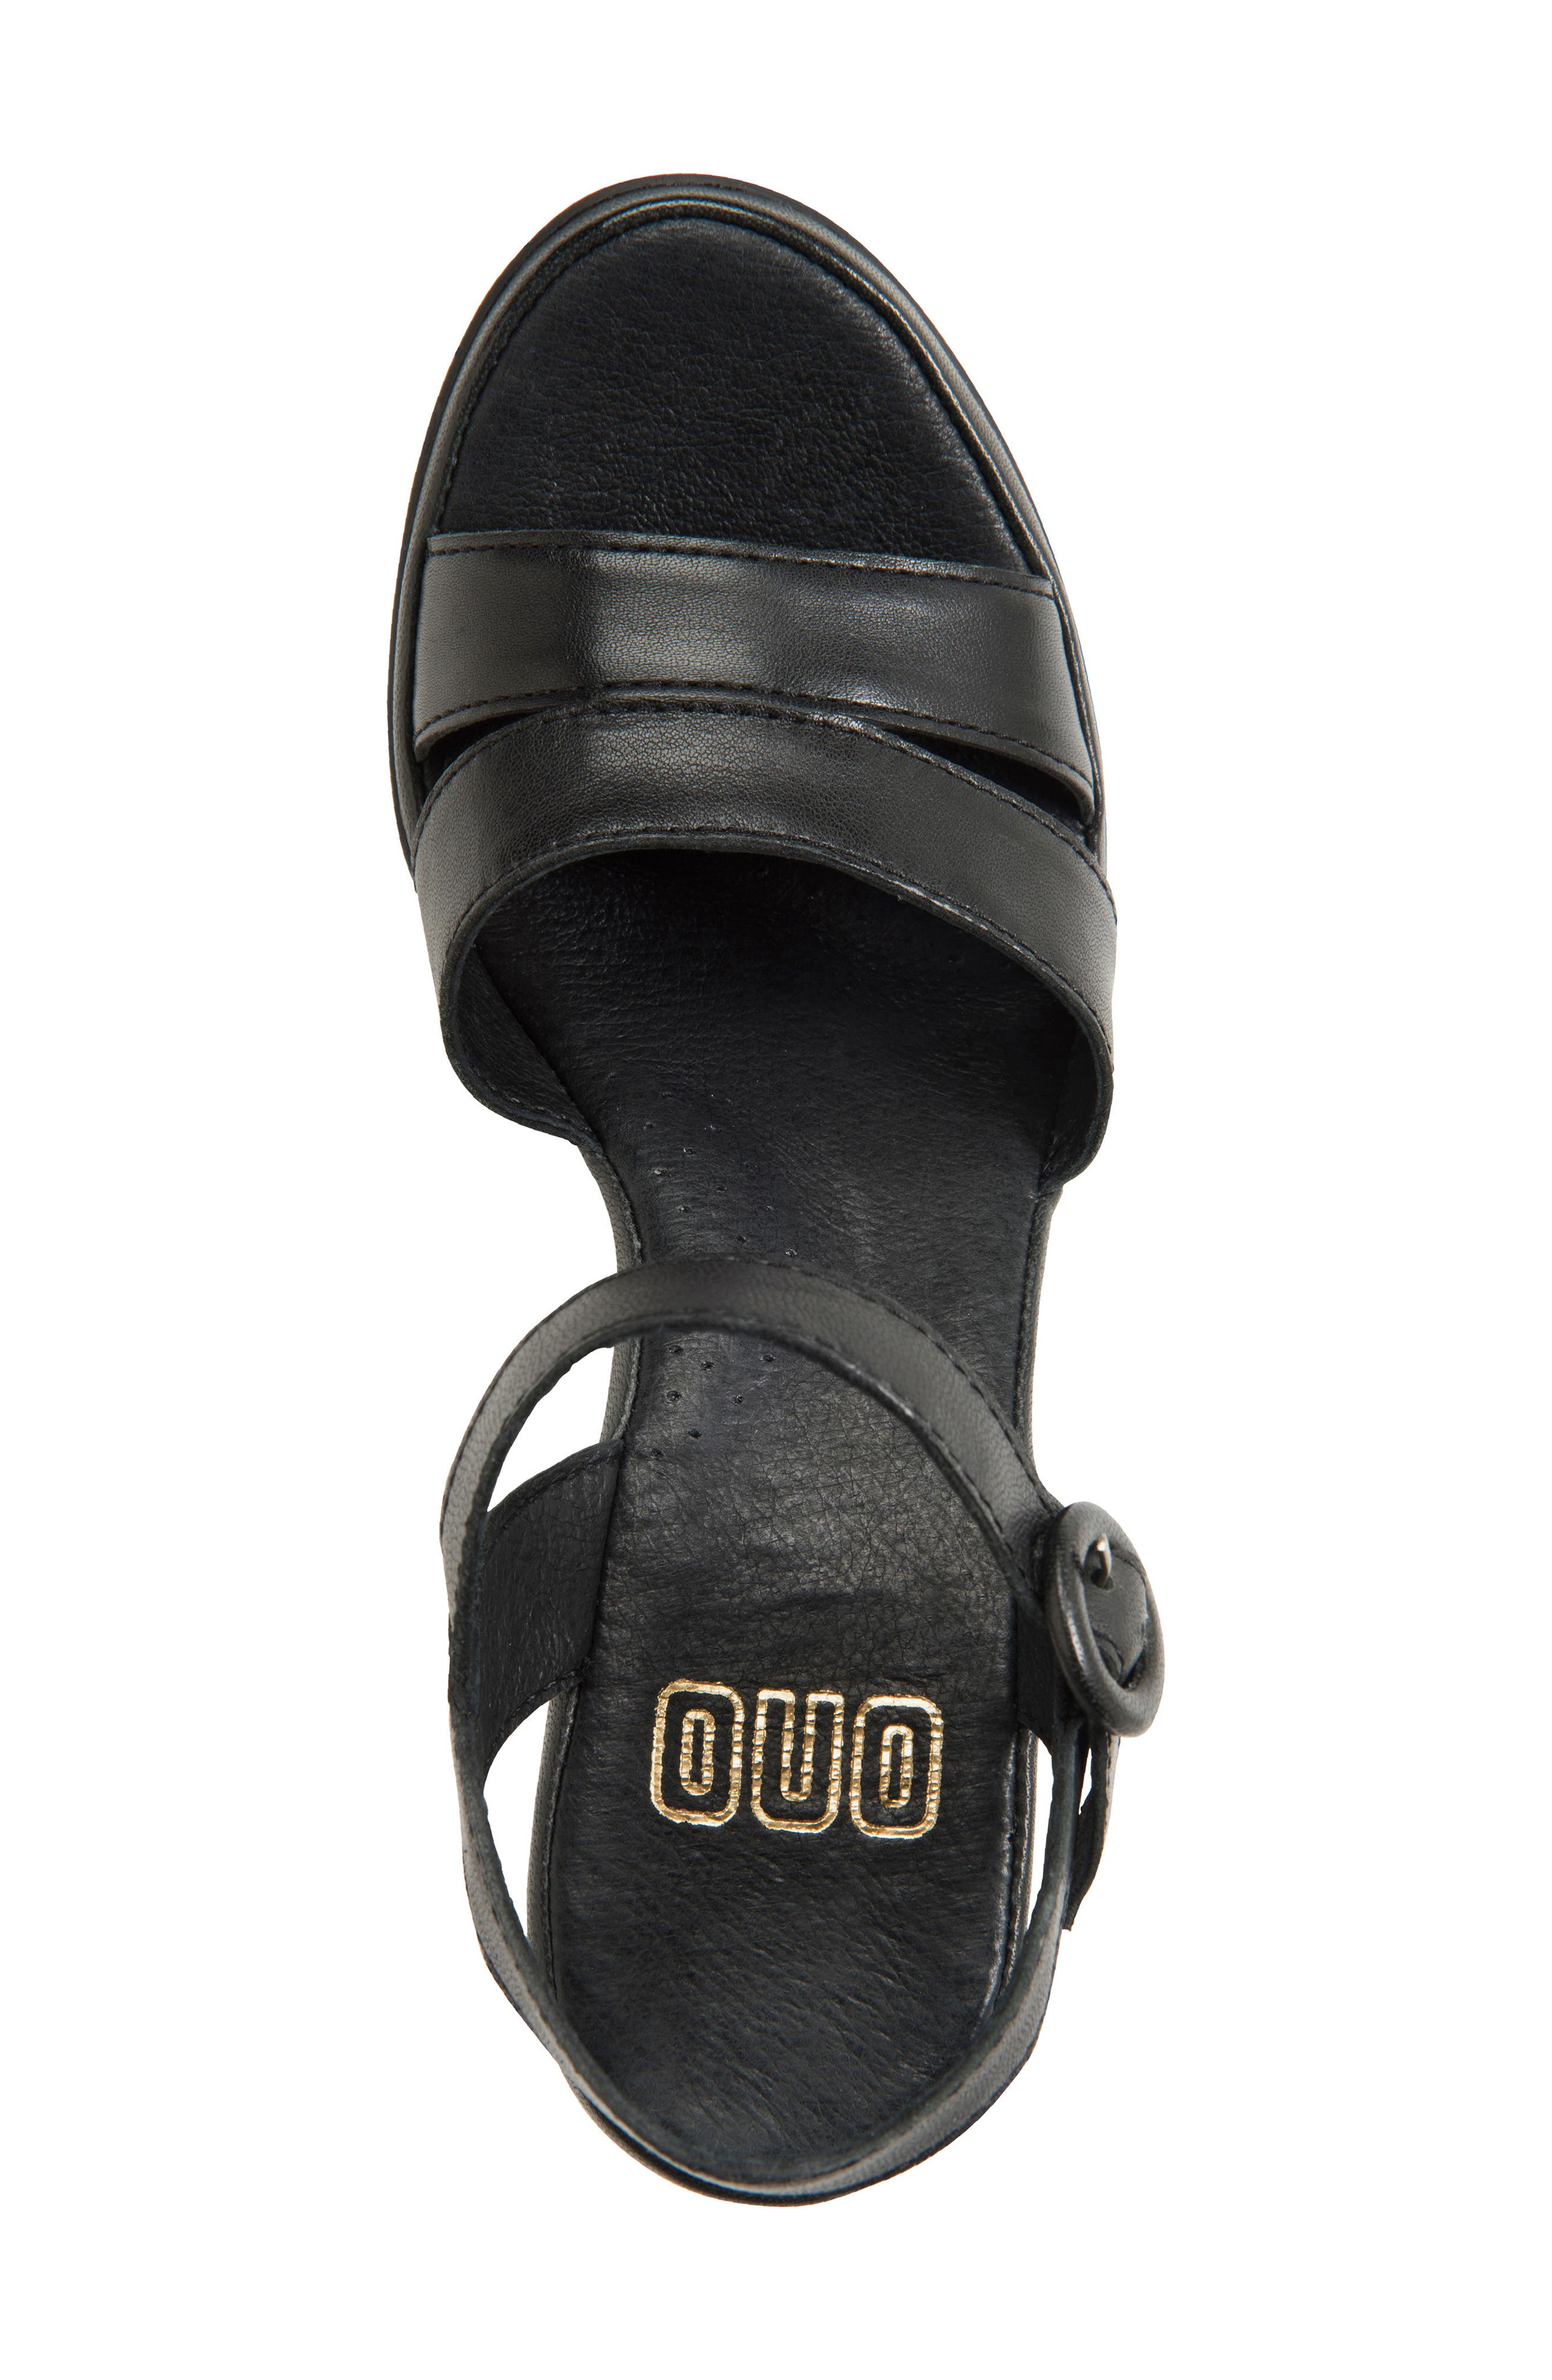 Hydro Wedge Sandal,                             Alternate thumbnail 5, color,                             BLACK LEATHER